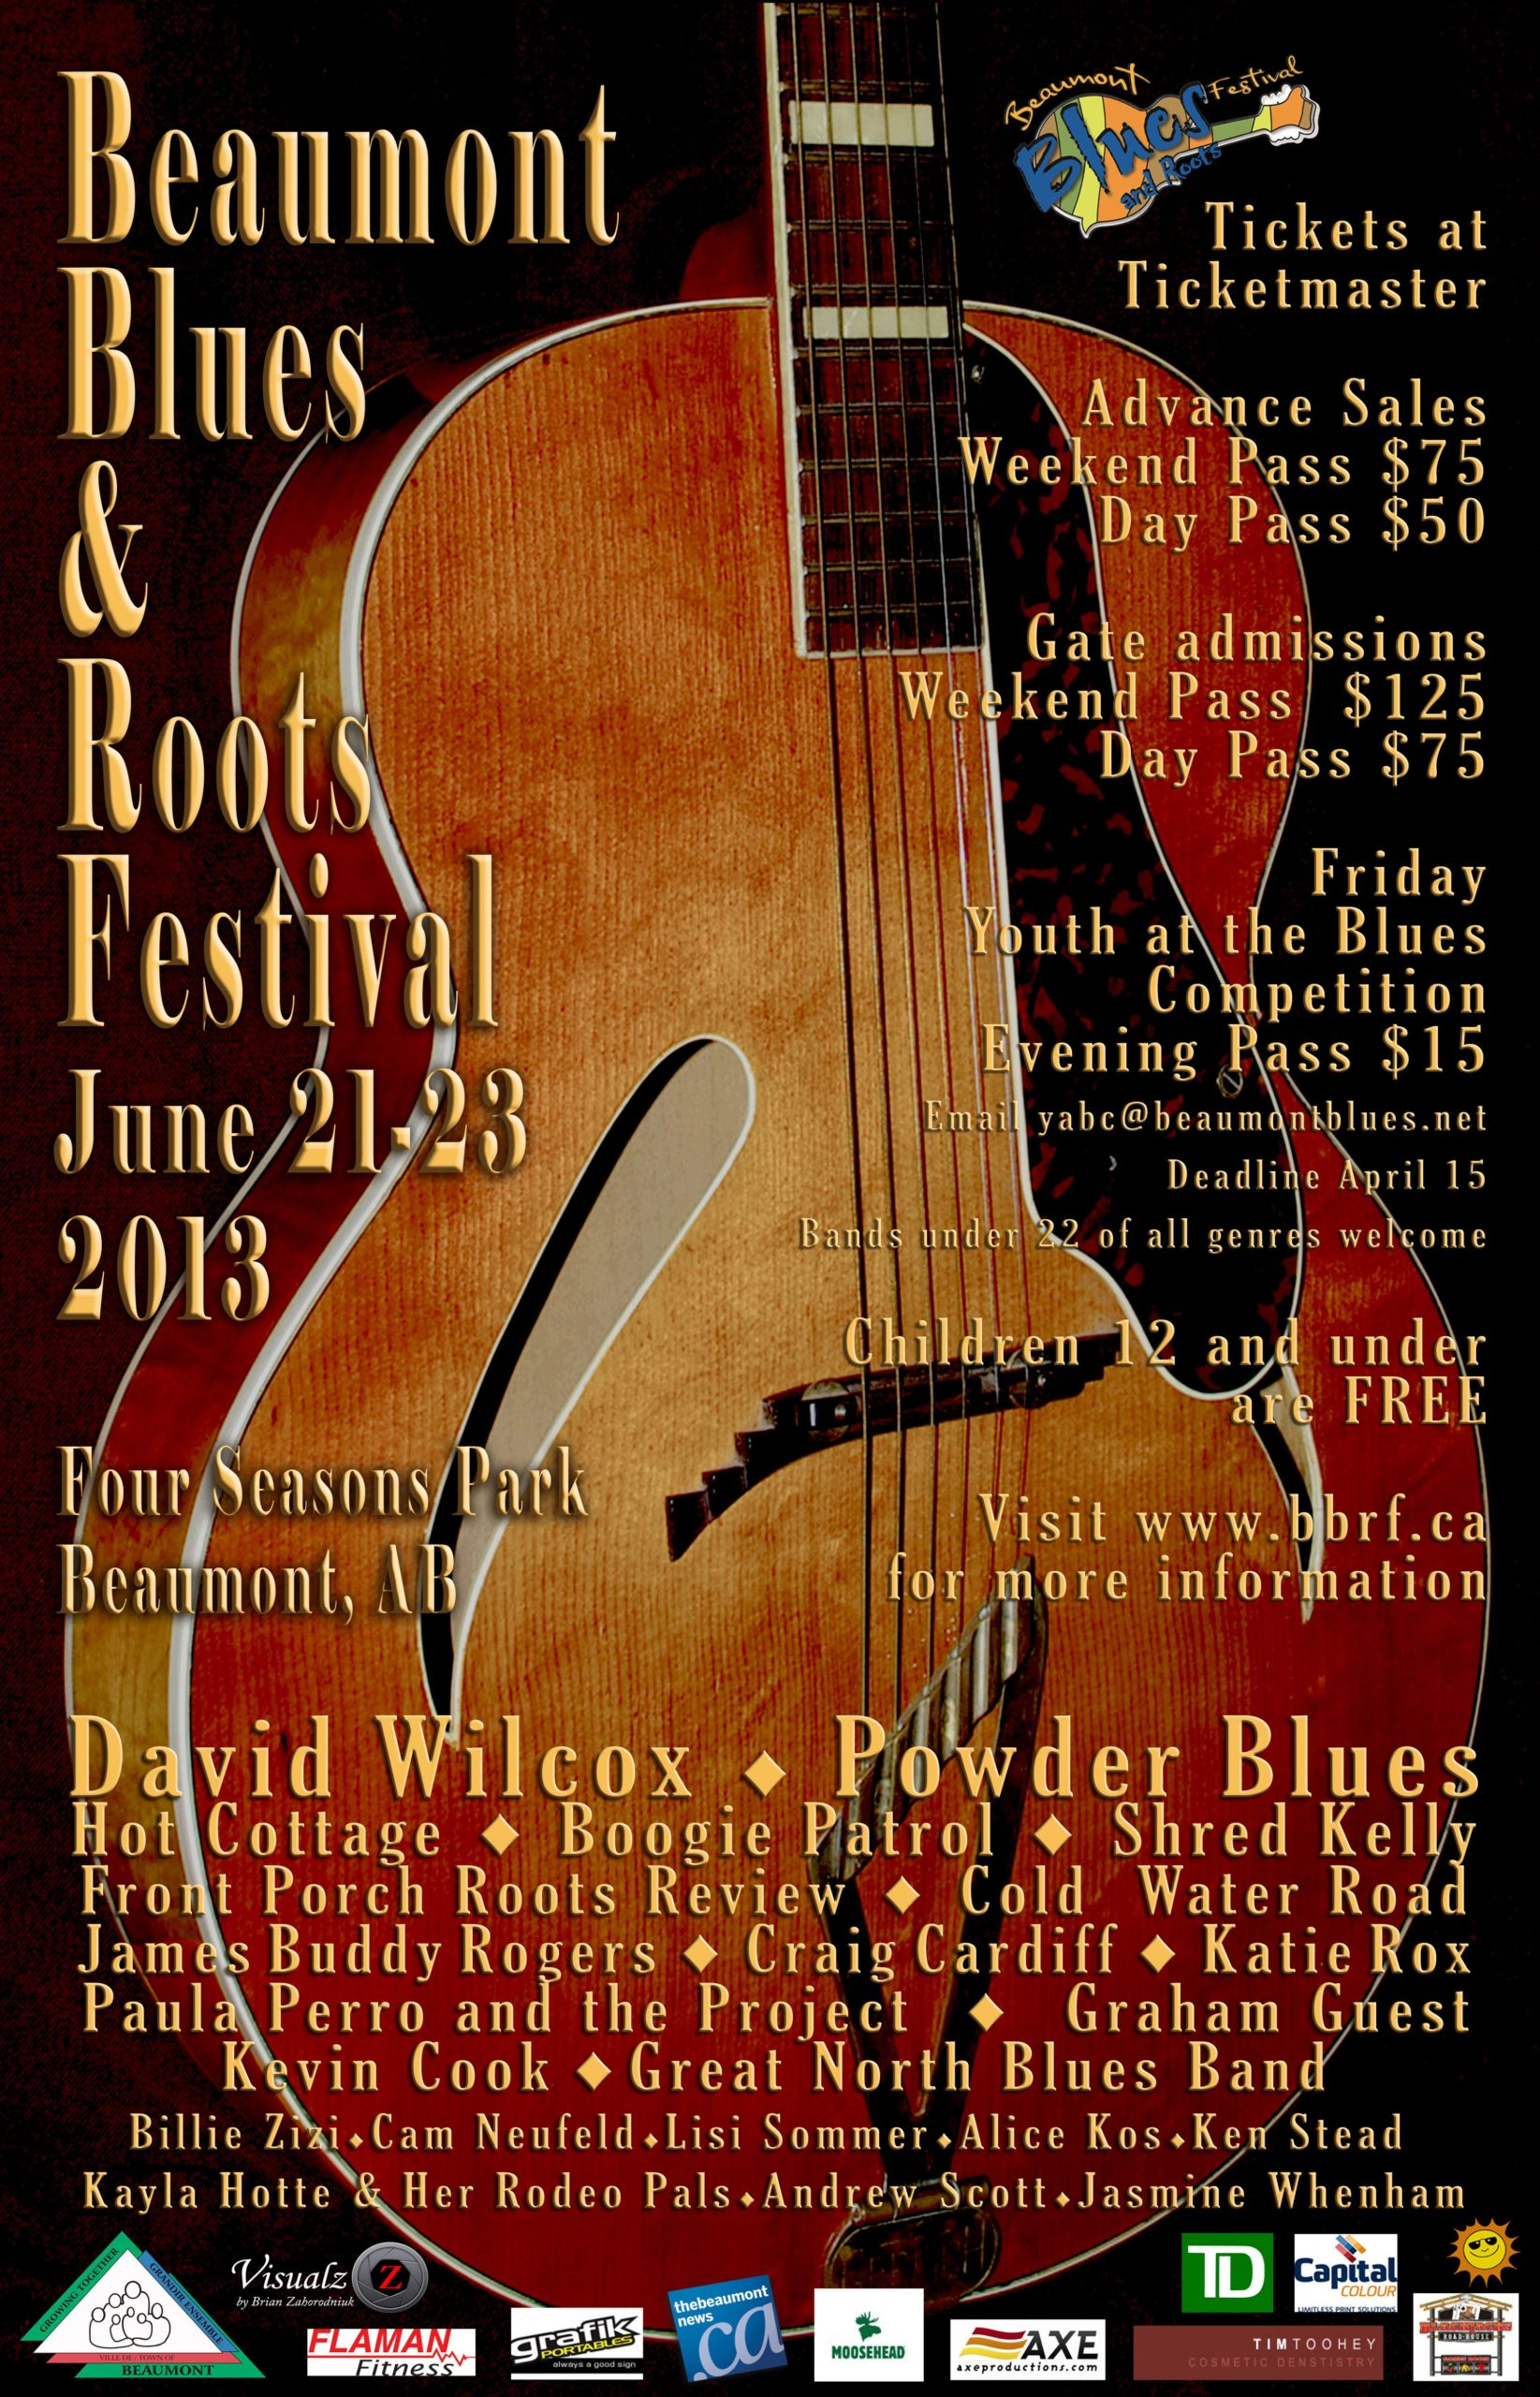 The Beaumont Blues & Roots Festival poster 2013